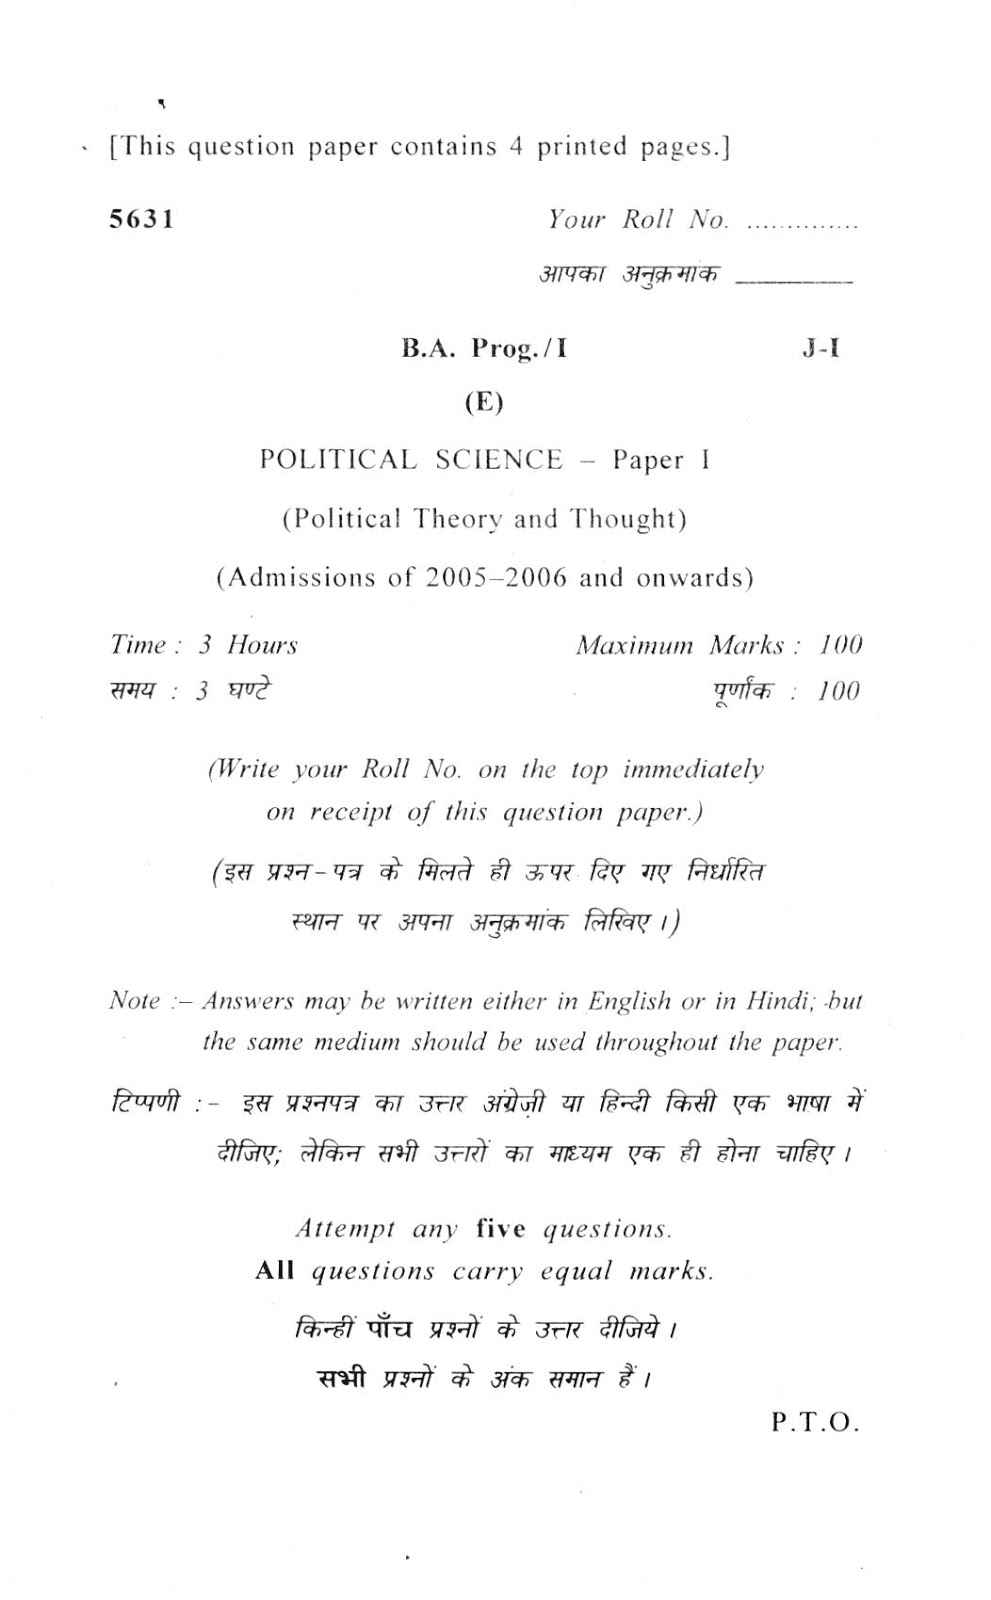 013 Paper I Politicaltheoryandthoughtpage 1 Research Political Science Striking Topics 2018 Essay Full